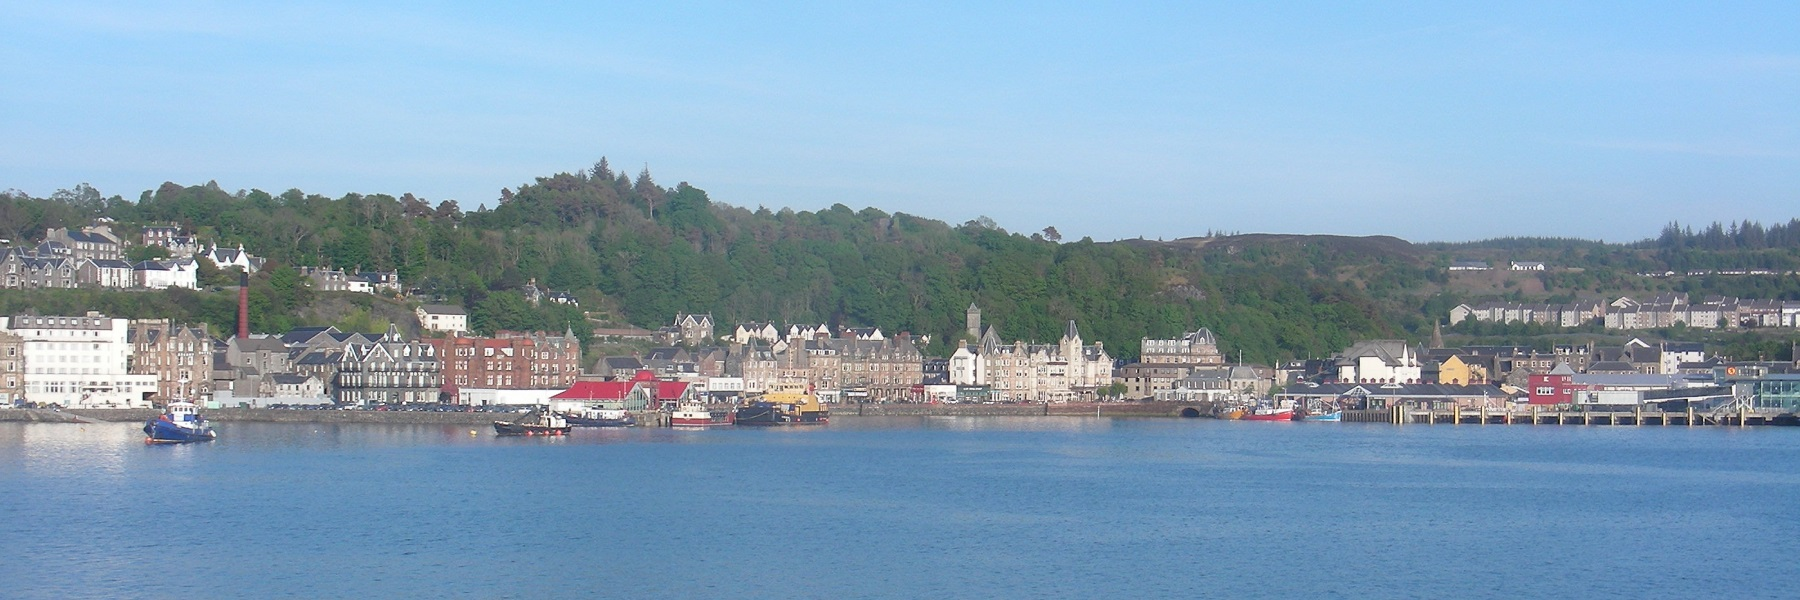 nh oban bay.jpg